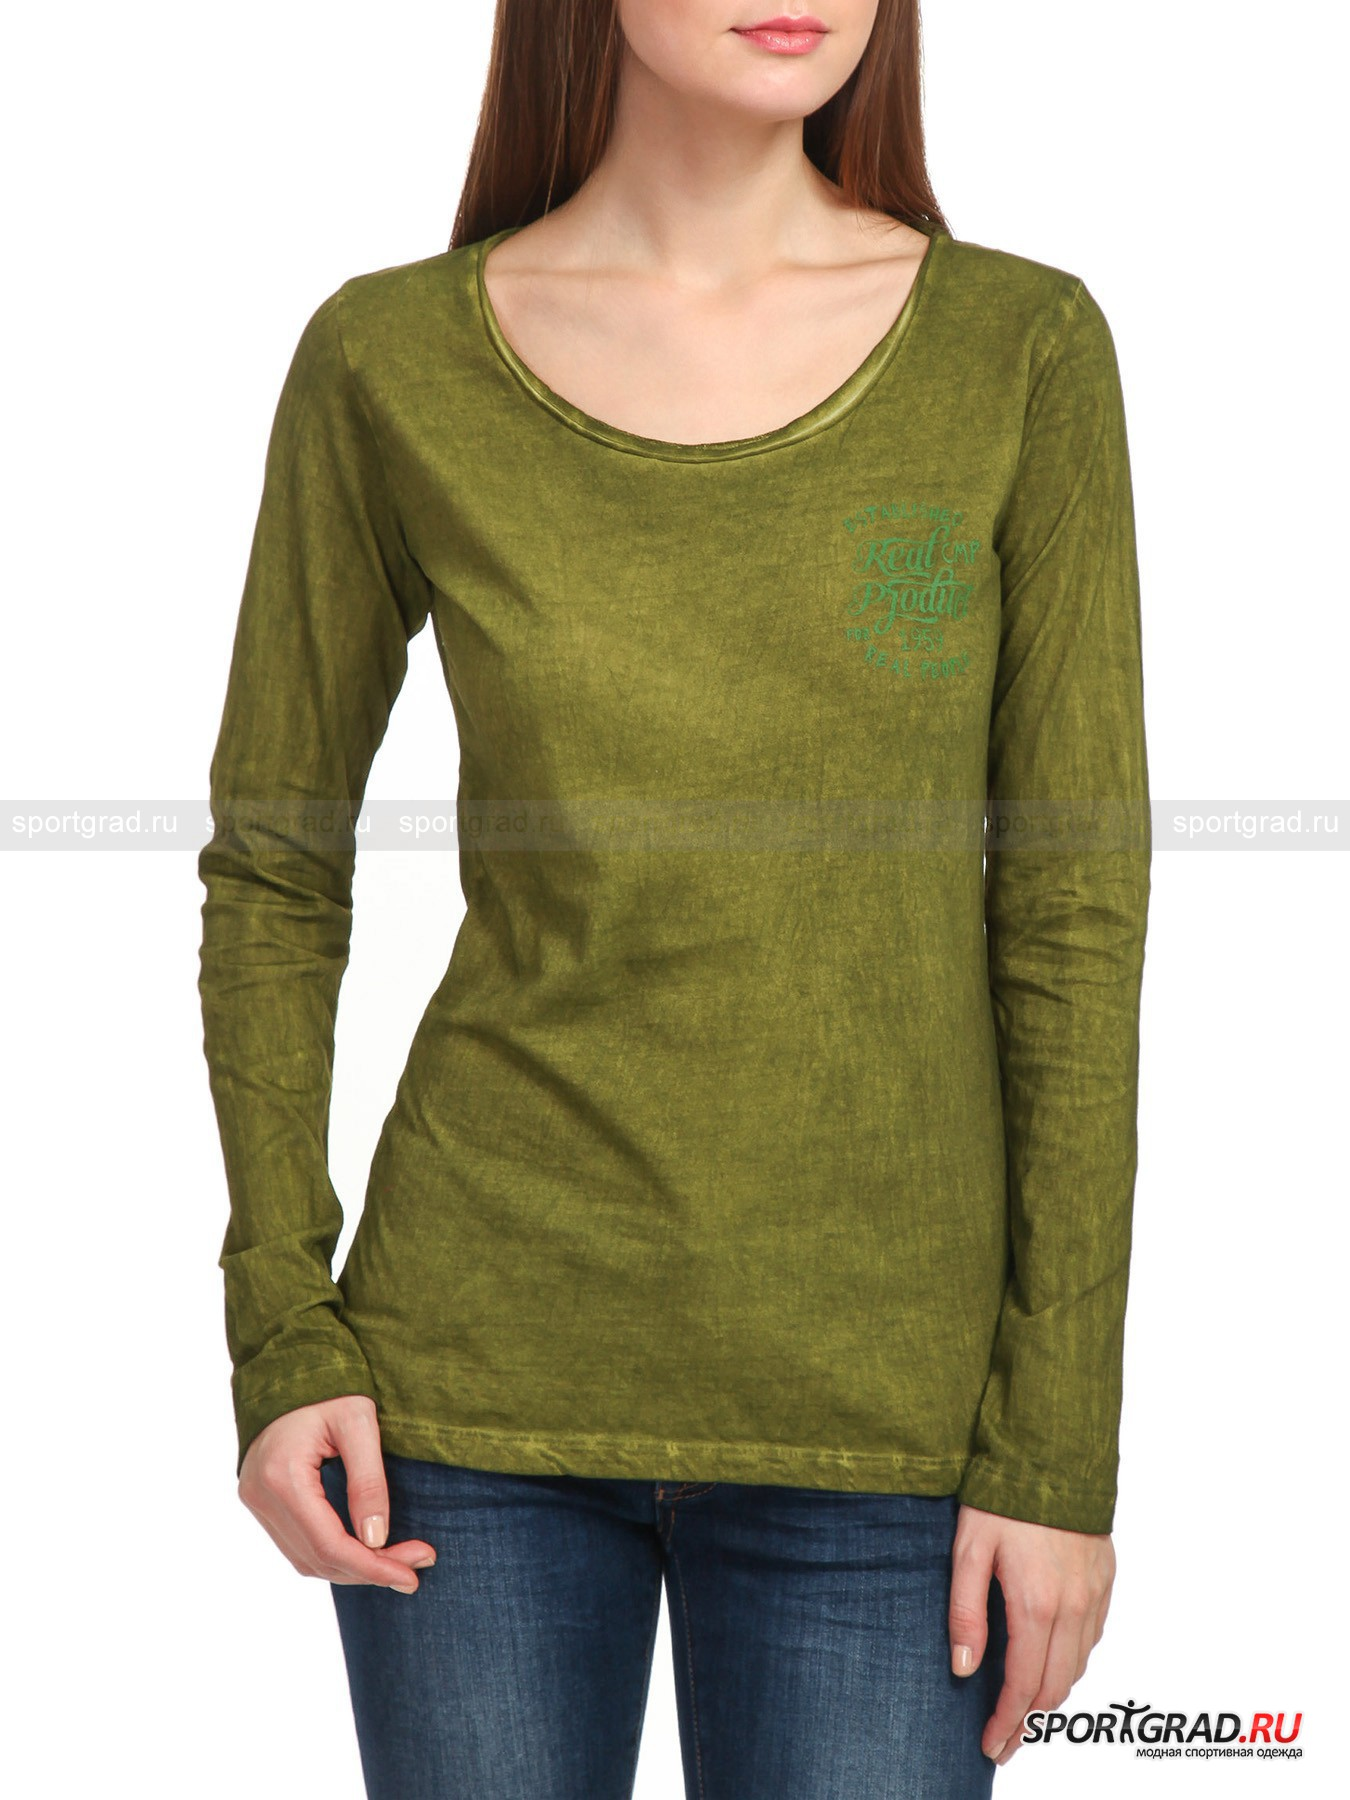 �������� ������� ��������� WOMAN T-SHIRT CAMPAGNOLO